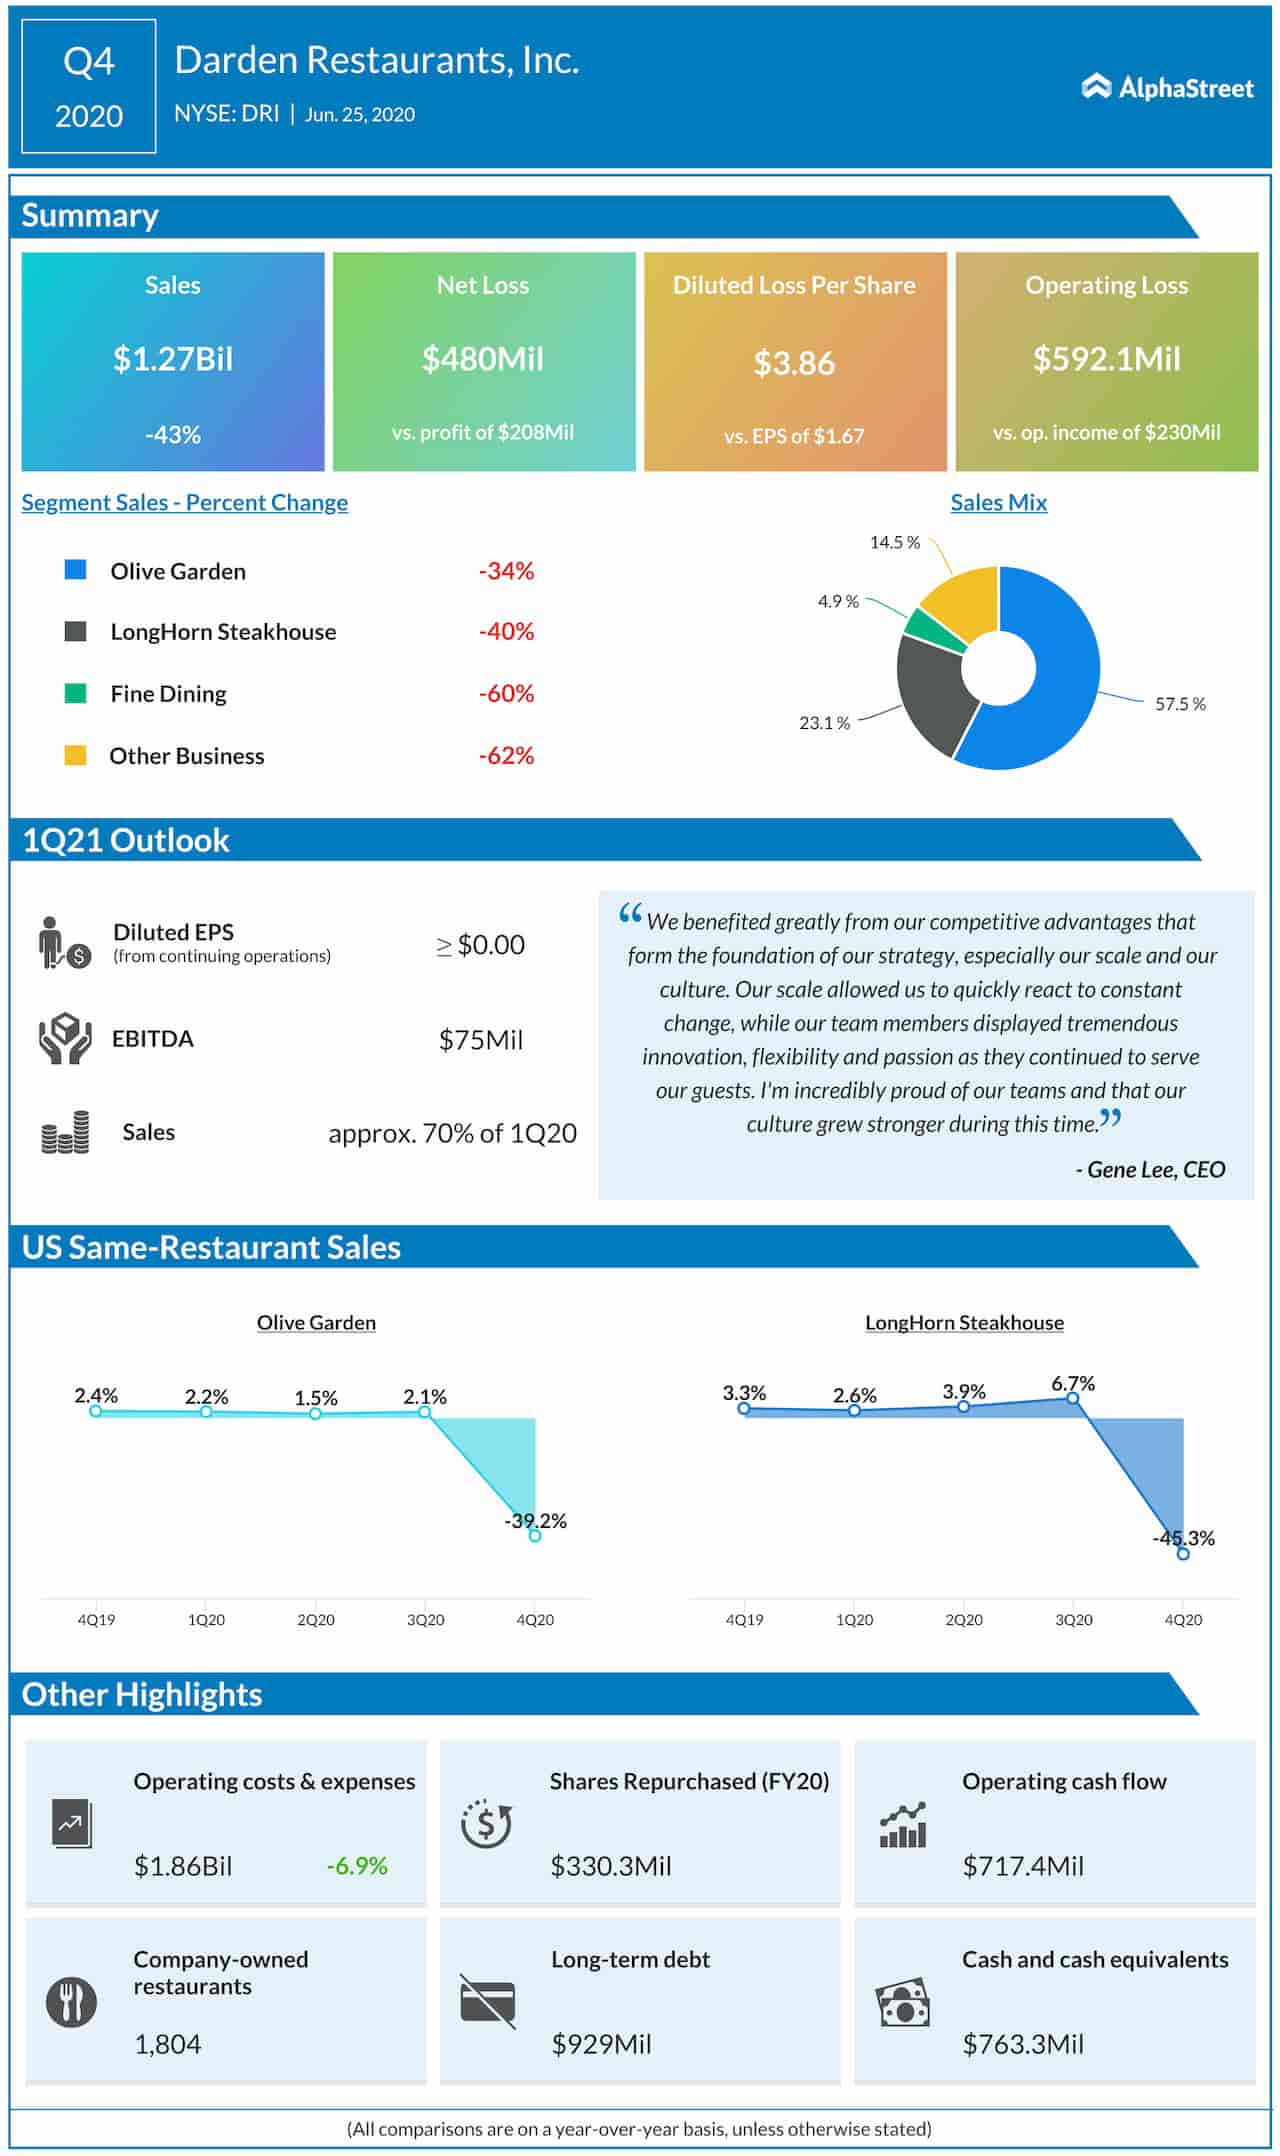 Darden Restaurants Q4 2020 Earnings Infographic